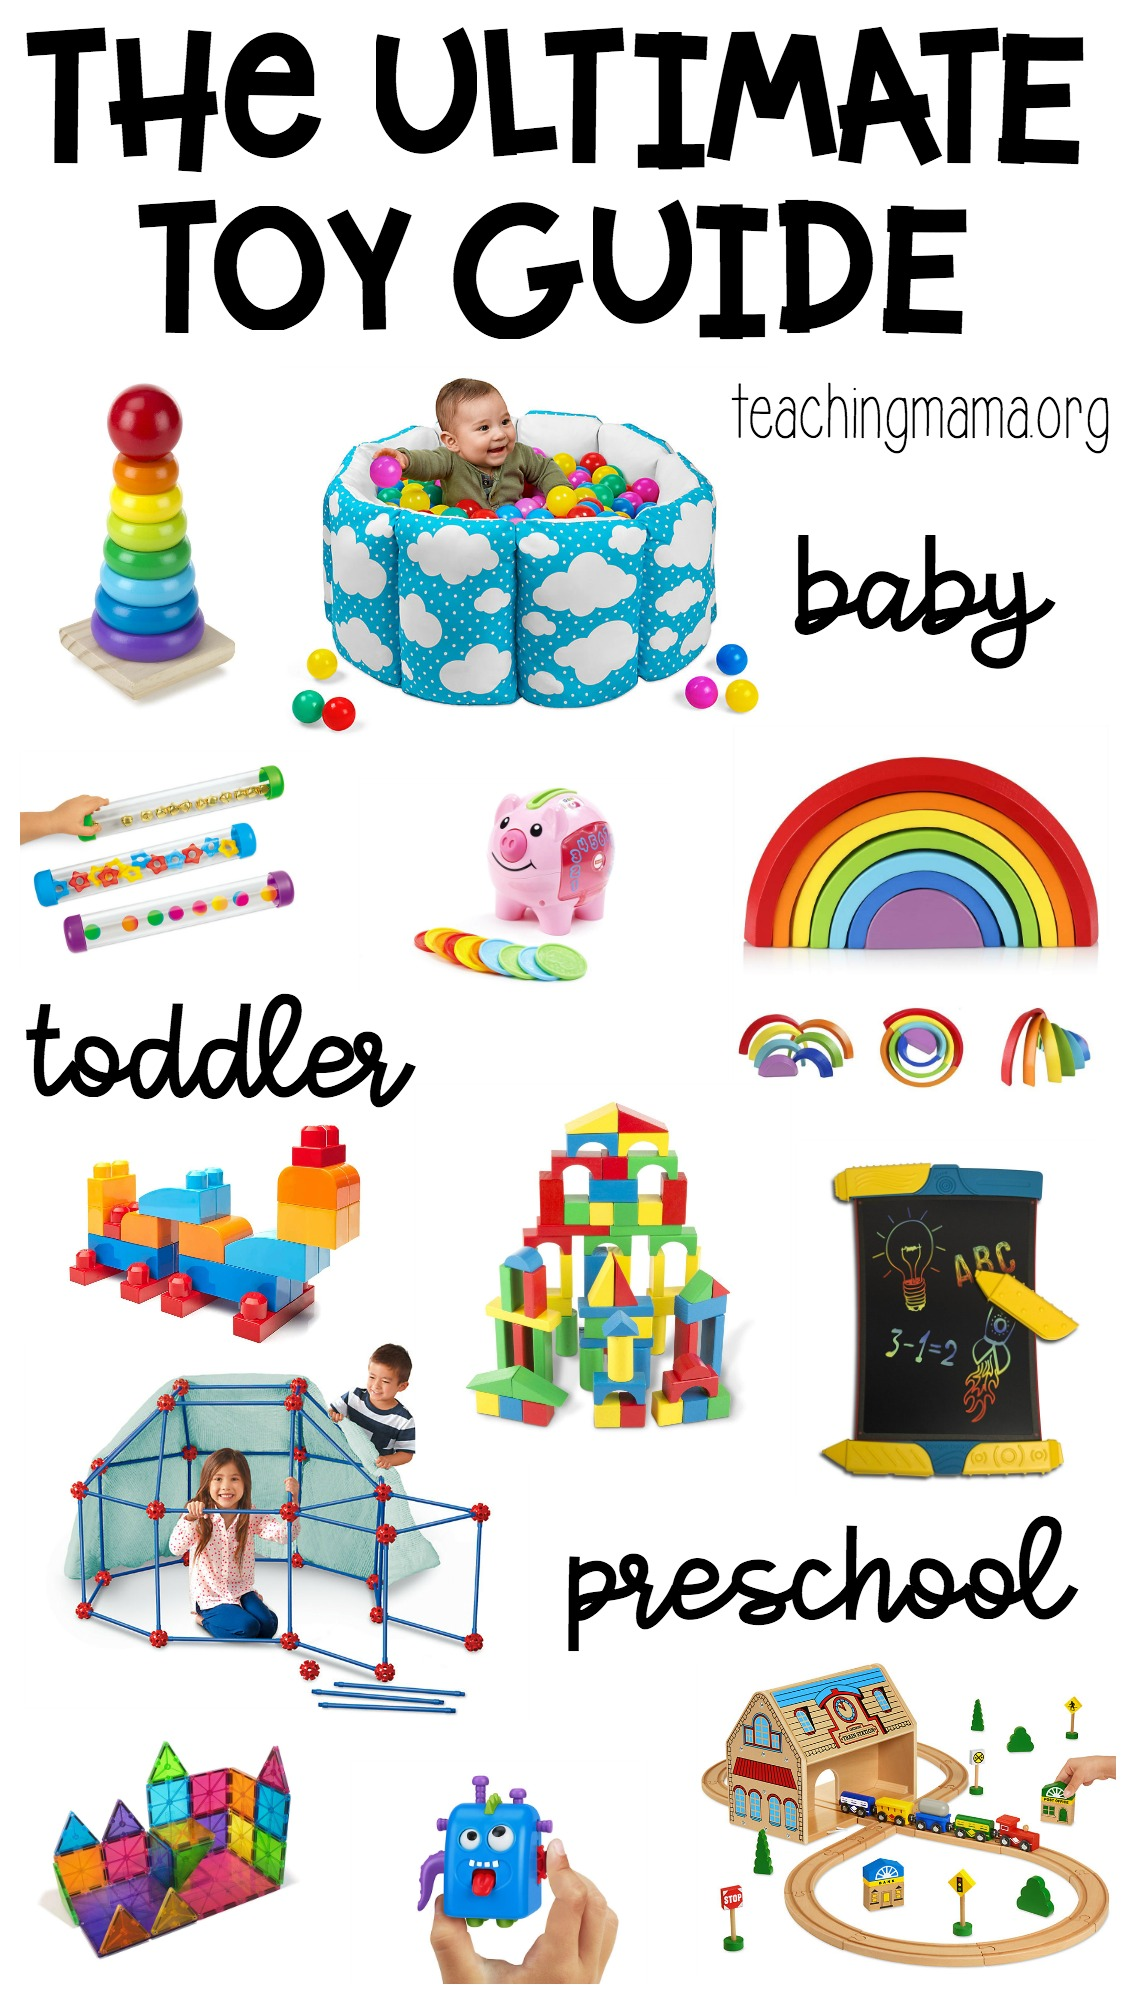 ultimate toy guide for babies, toddlers, and preschoolers